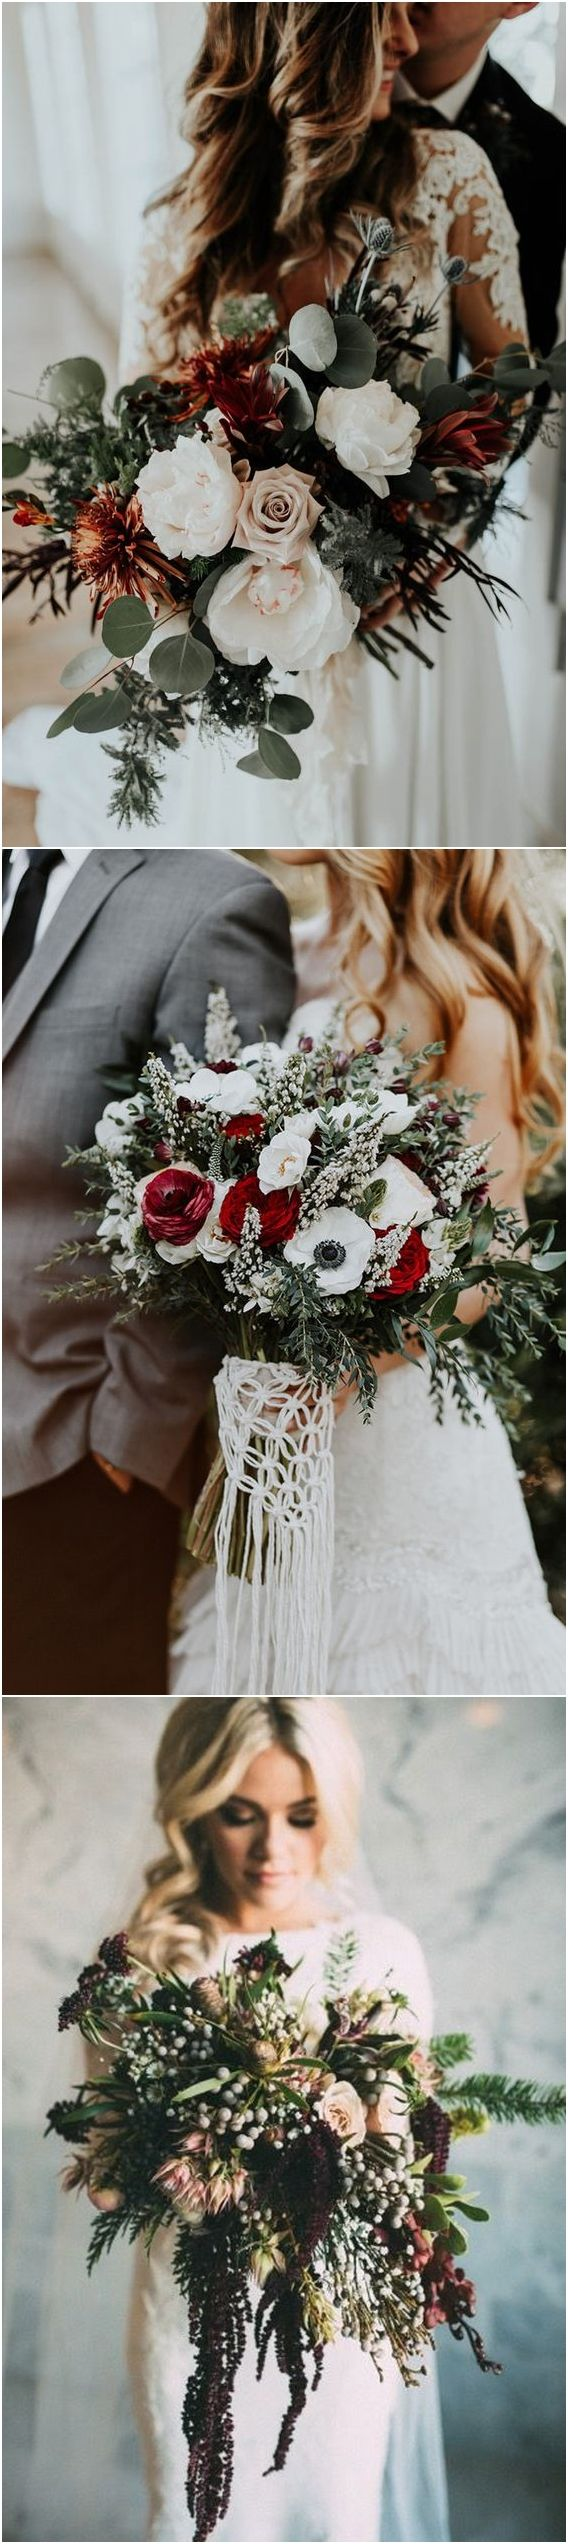 40 Best Of Winter Wedding Ideas For 2018